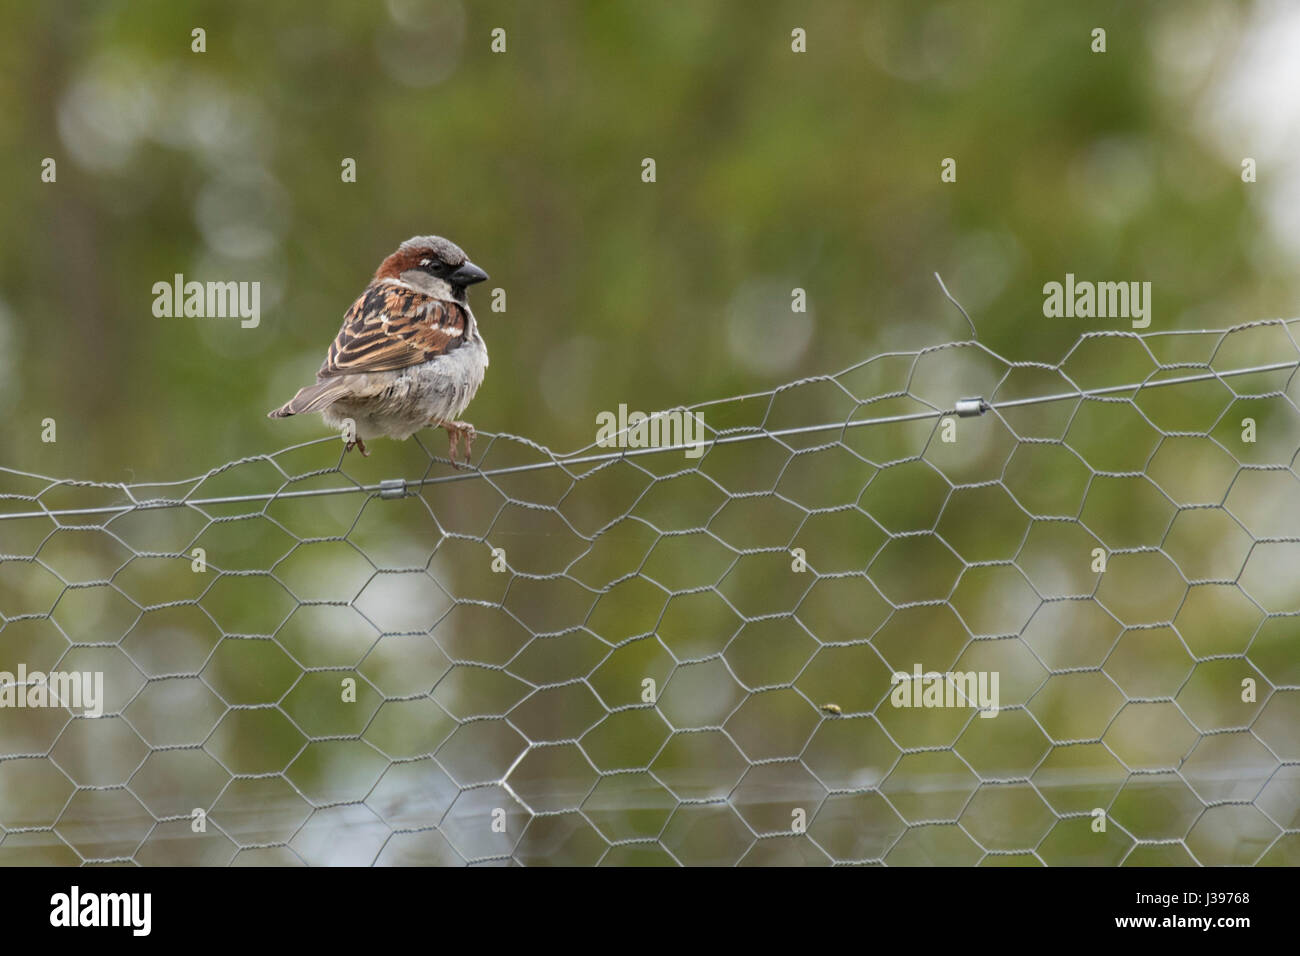 House sparrow perched on chicken wire fence Stock Photo